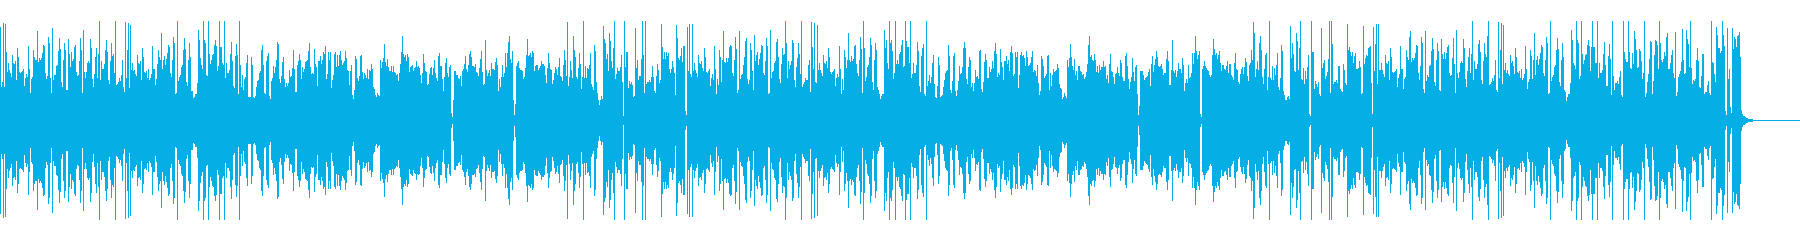 A cheerful and cute waltz that seems to flow in an amusement park's reproduced waveform